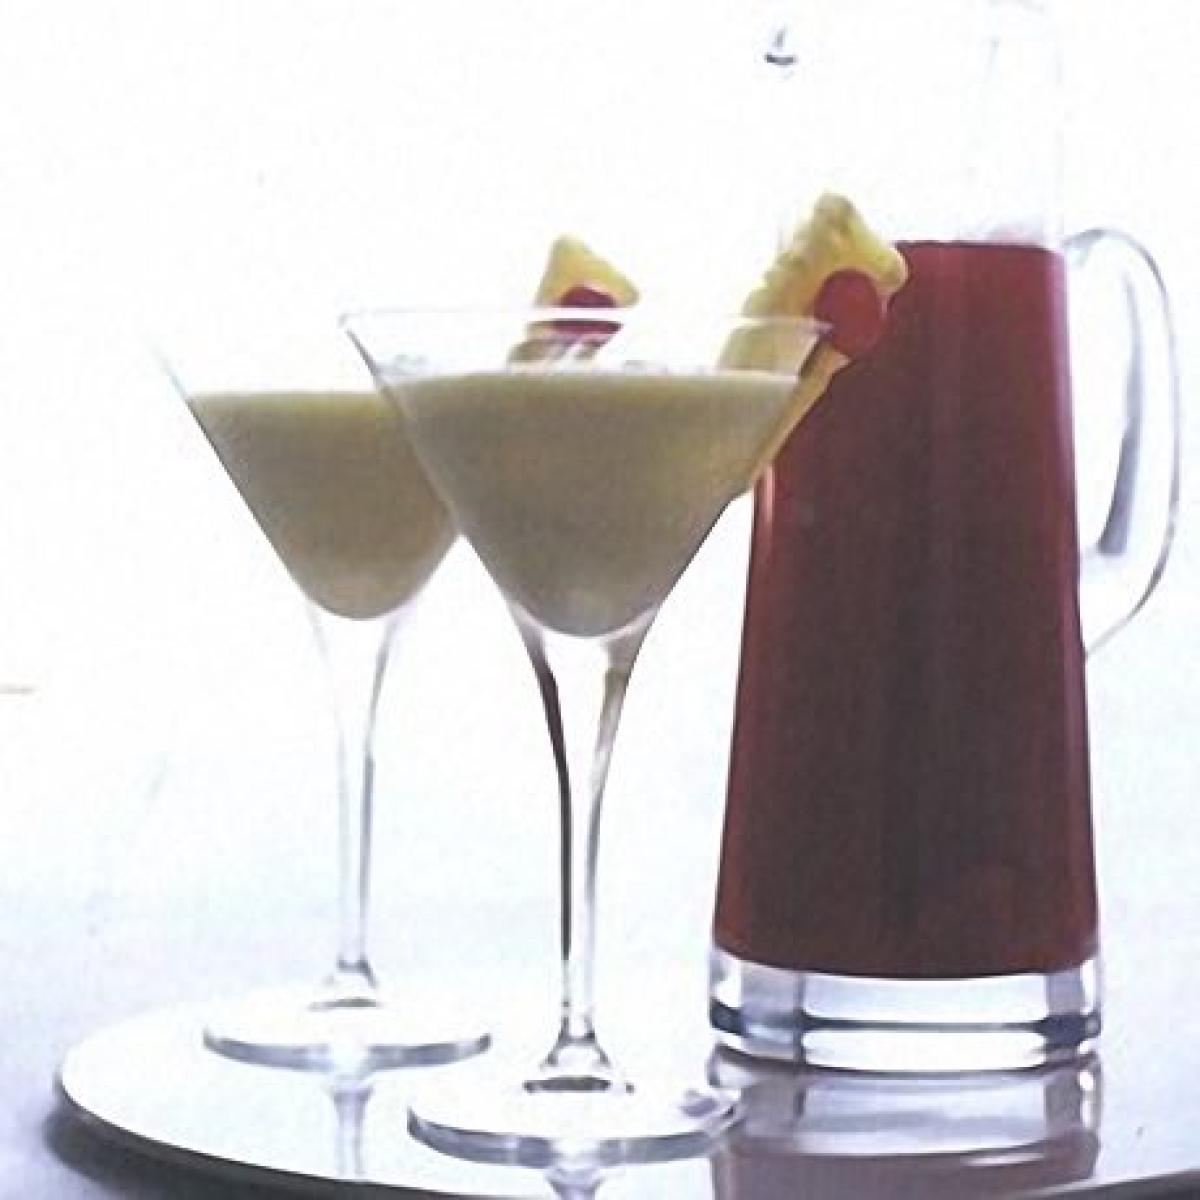 A picture of Delia's Pina Colada recipe